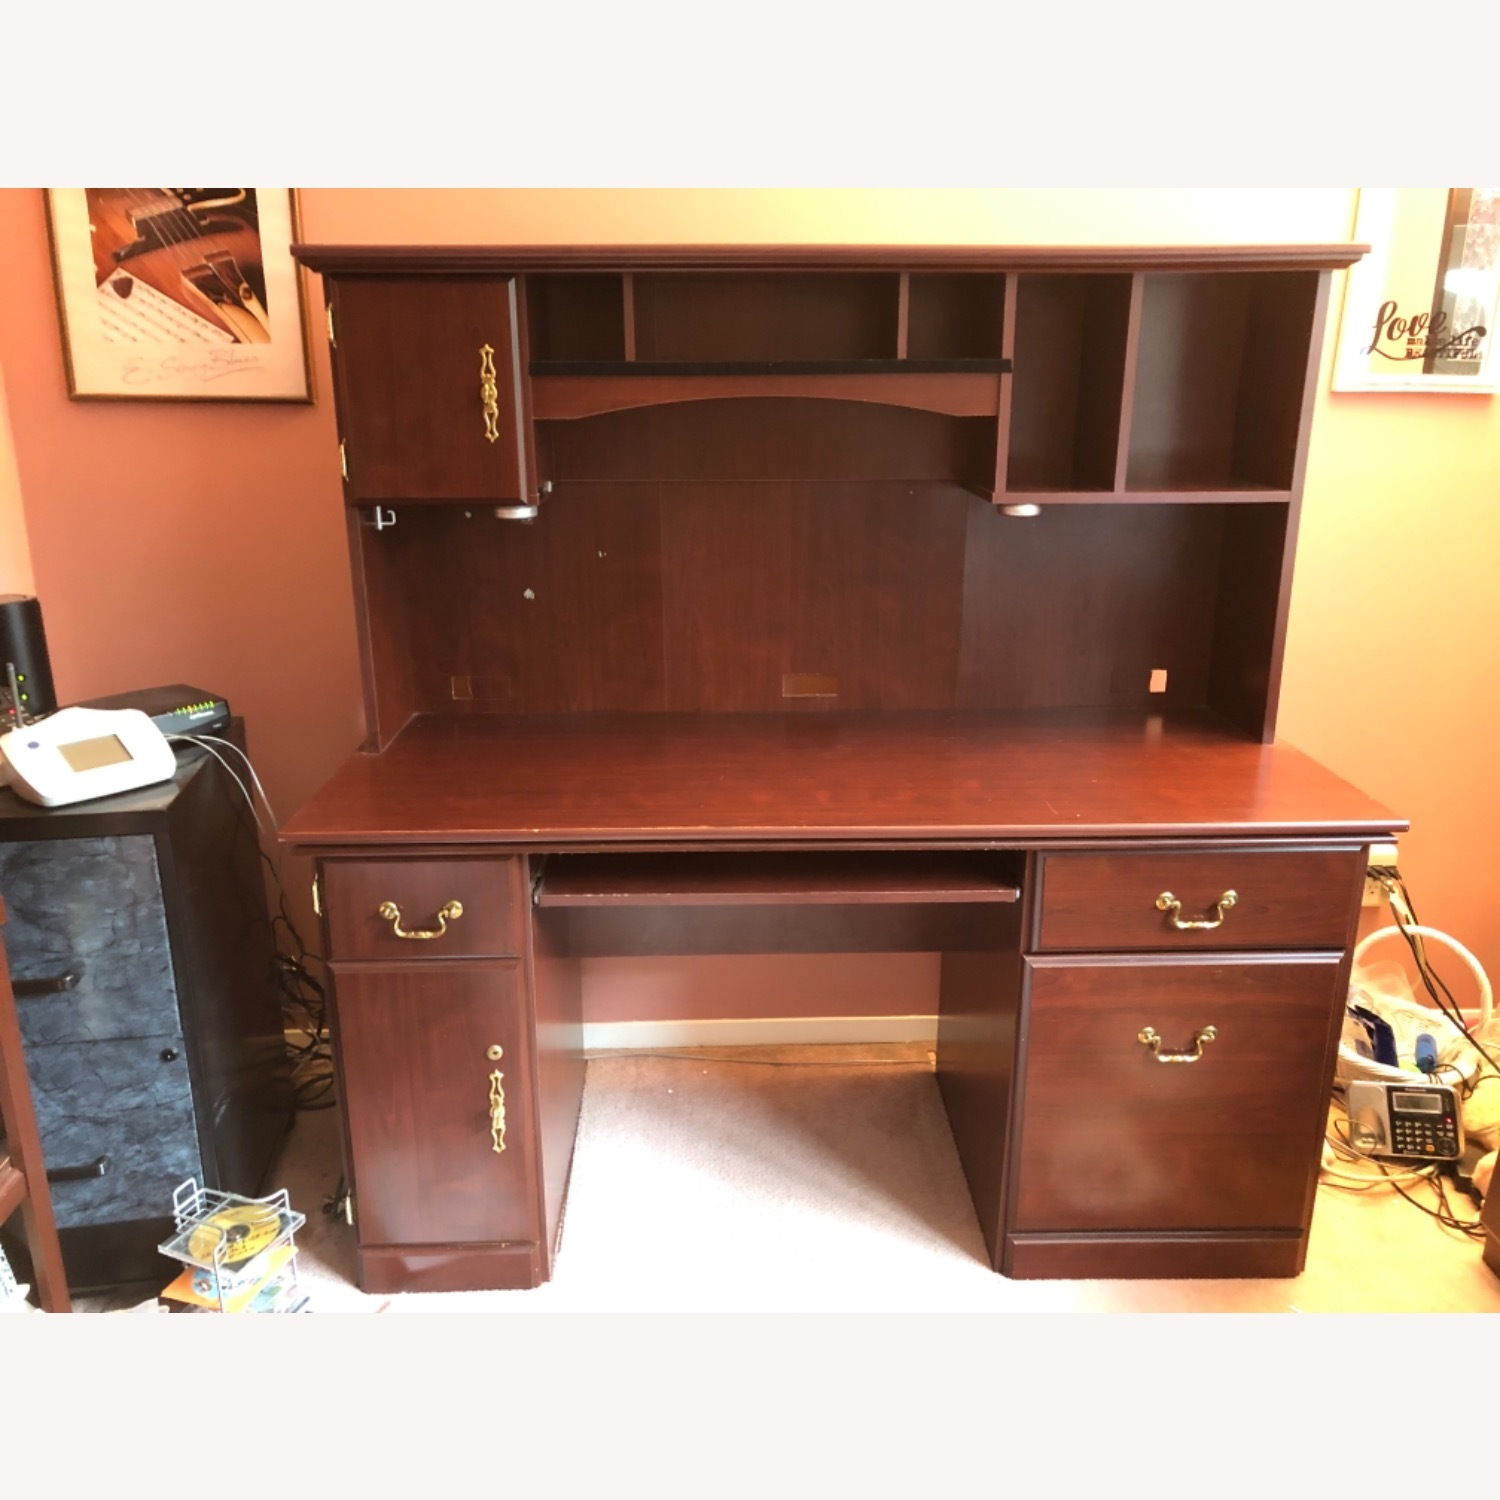 Executive Desk in Cherry Wood - image-3